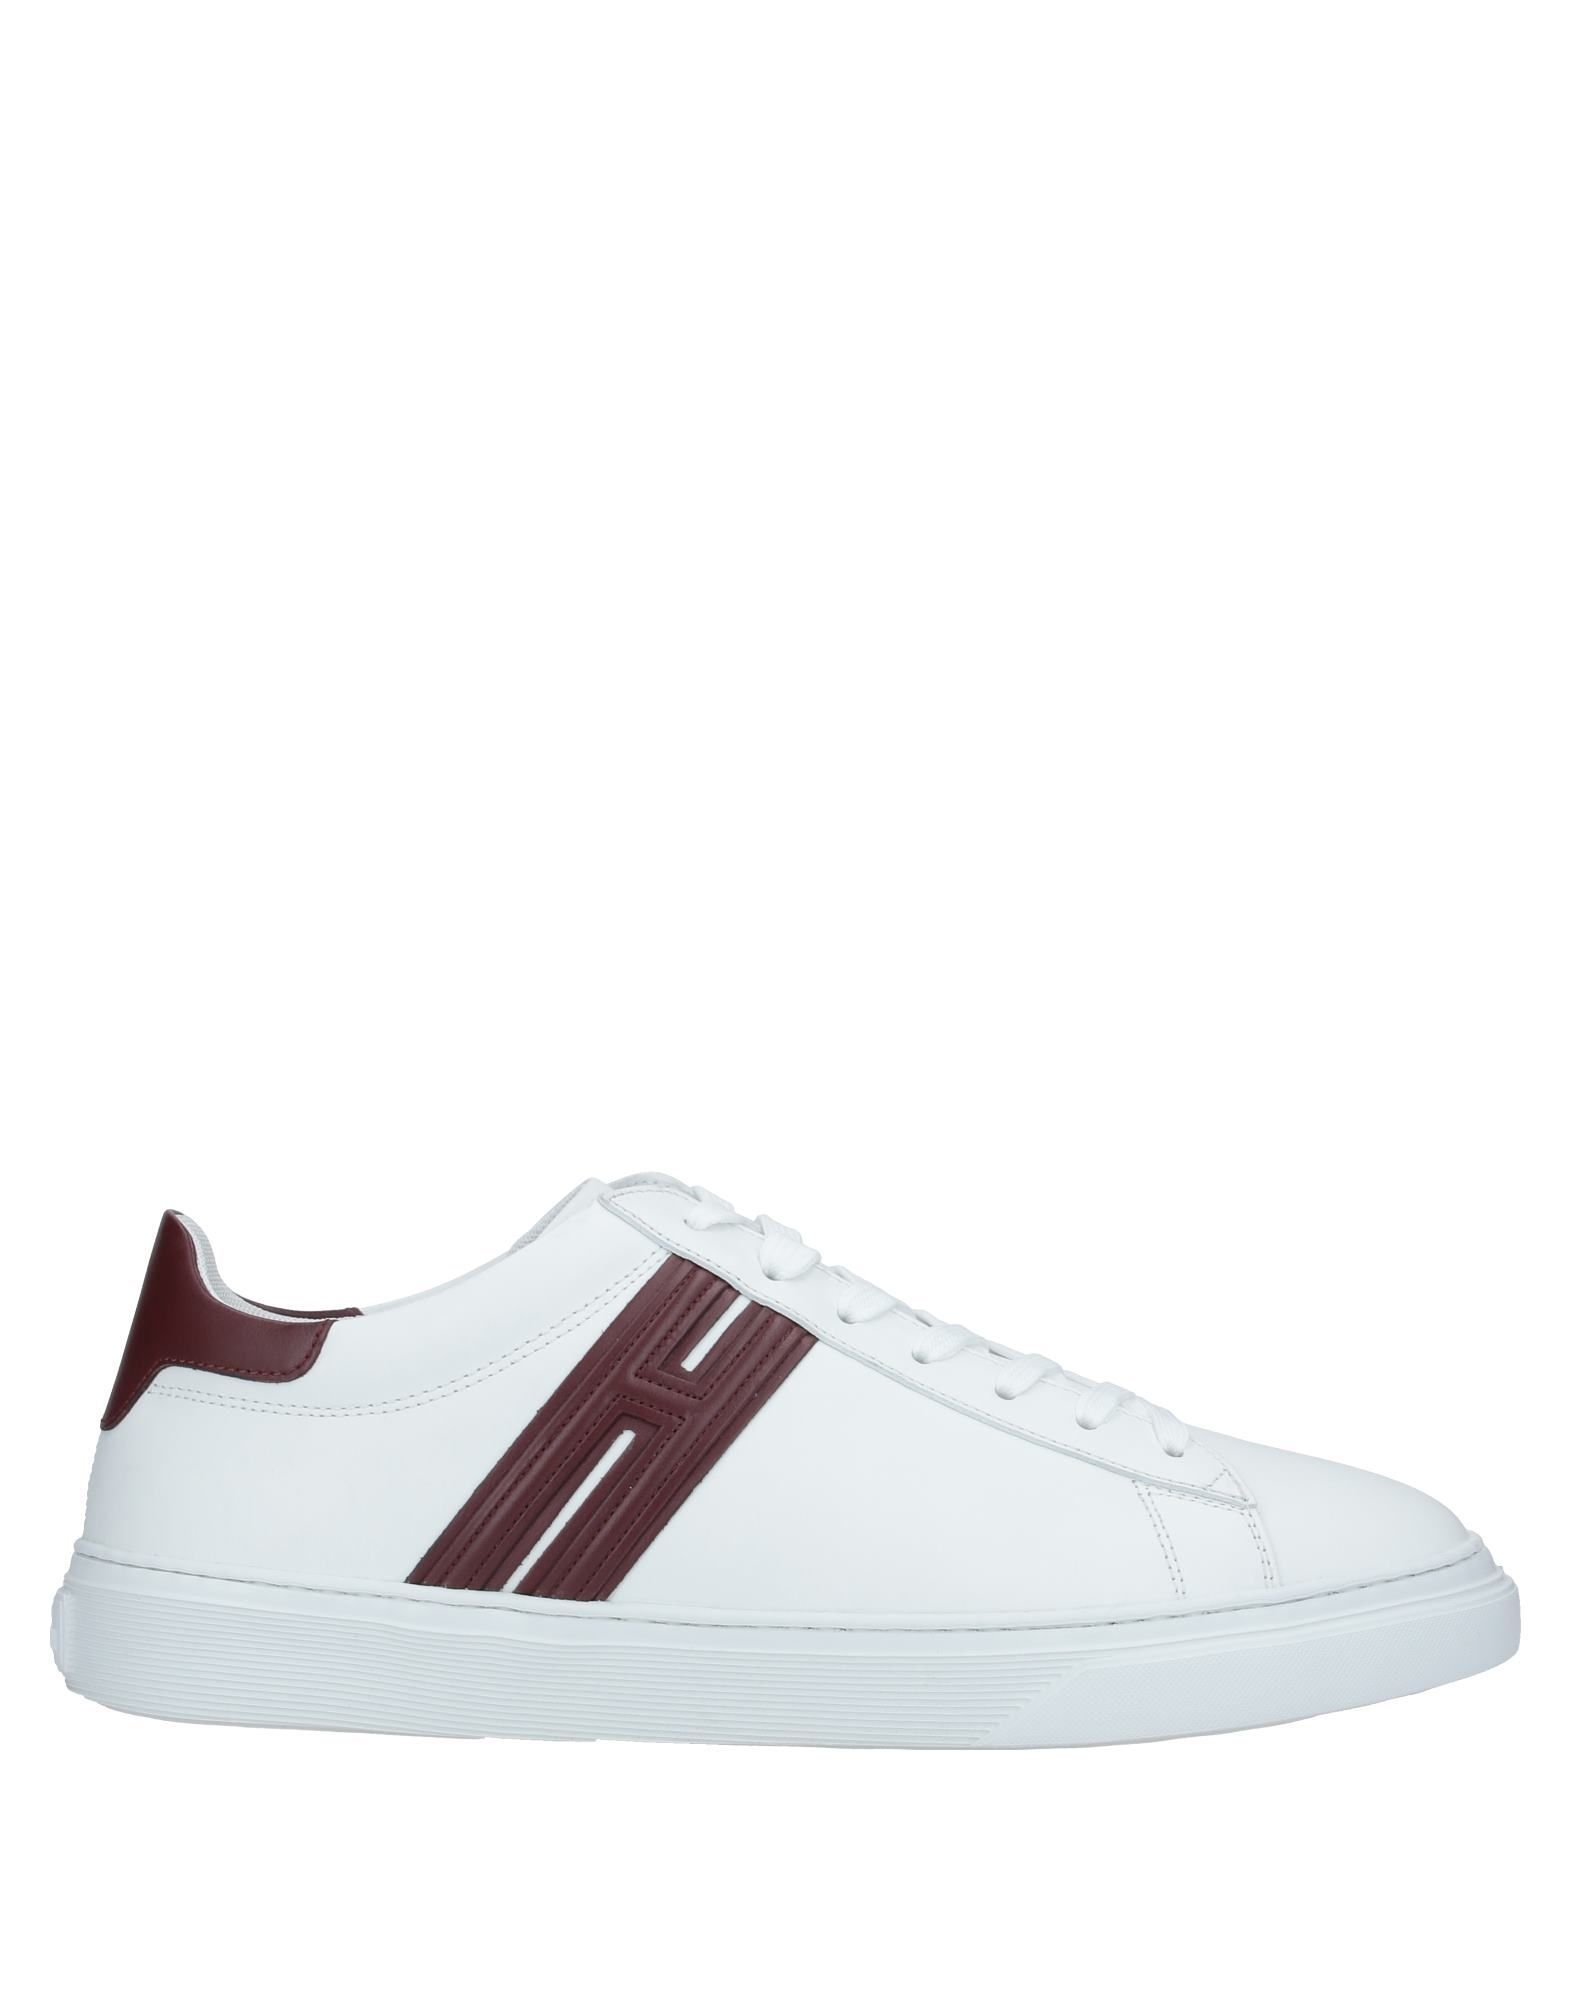 Hogan White Leather Sneakers